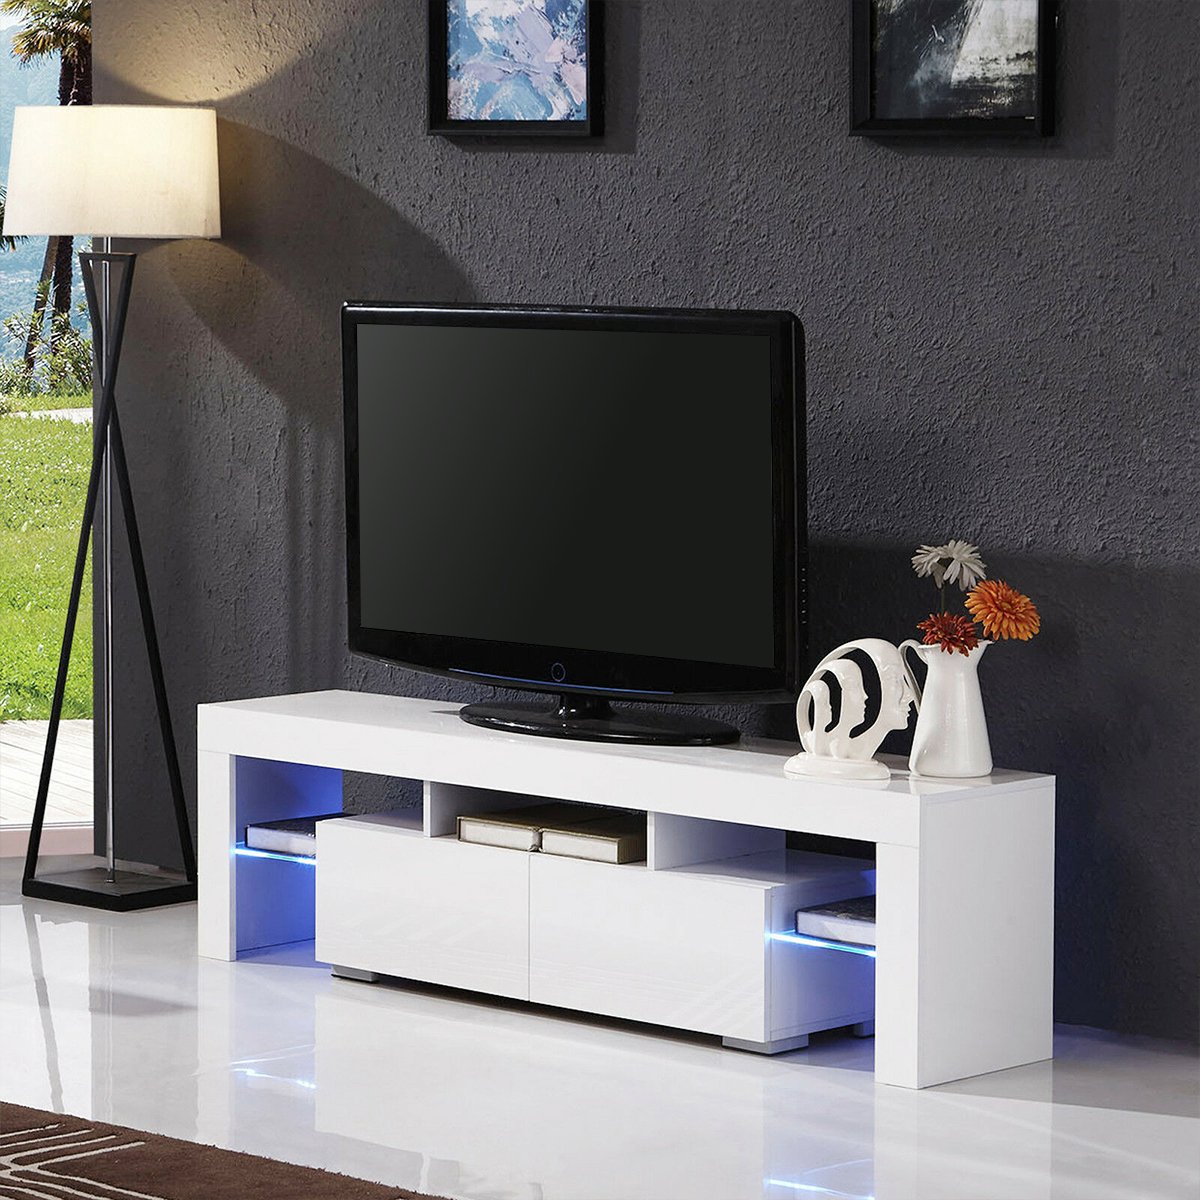 57'' Top LED Light High Gloss TV Unit Cabinet TV Stand Modern Living Room Home Furniture Led Monitor Stand TV Cabinet Table